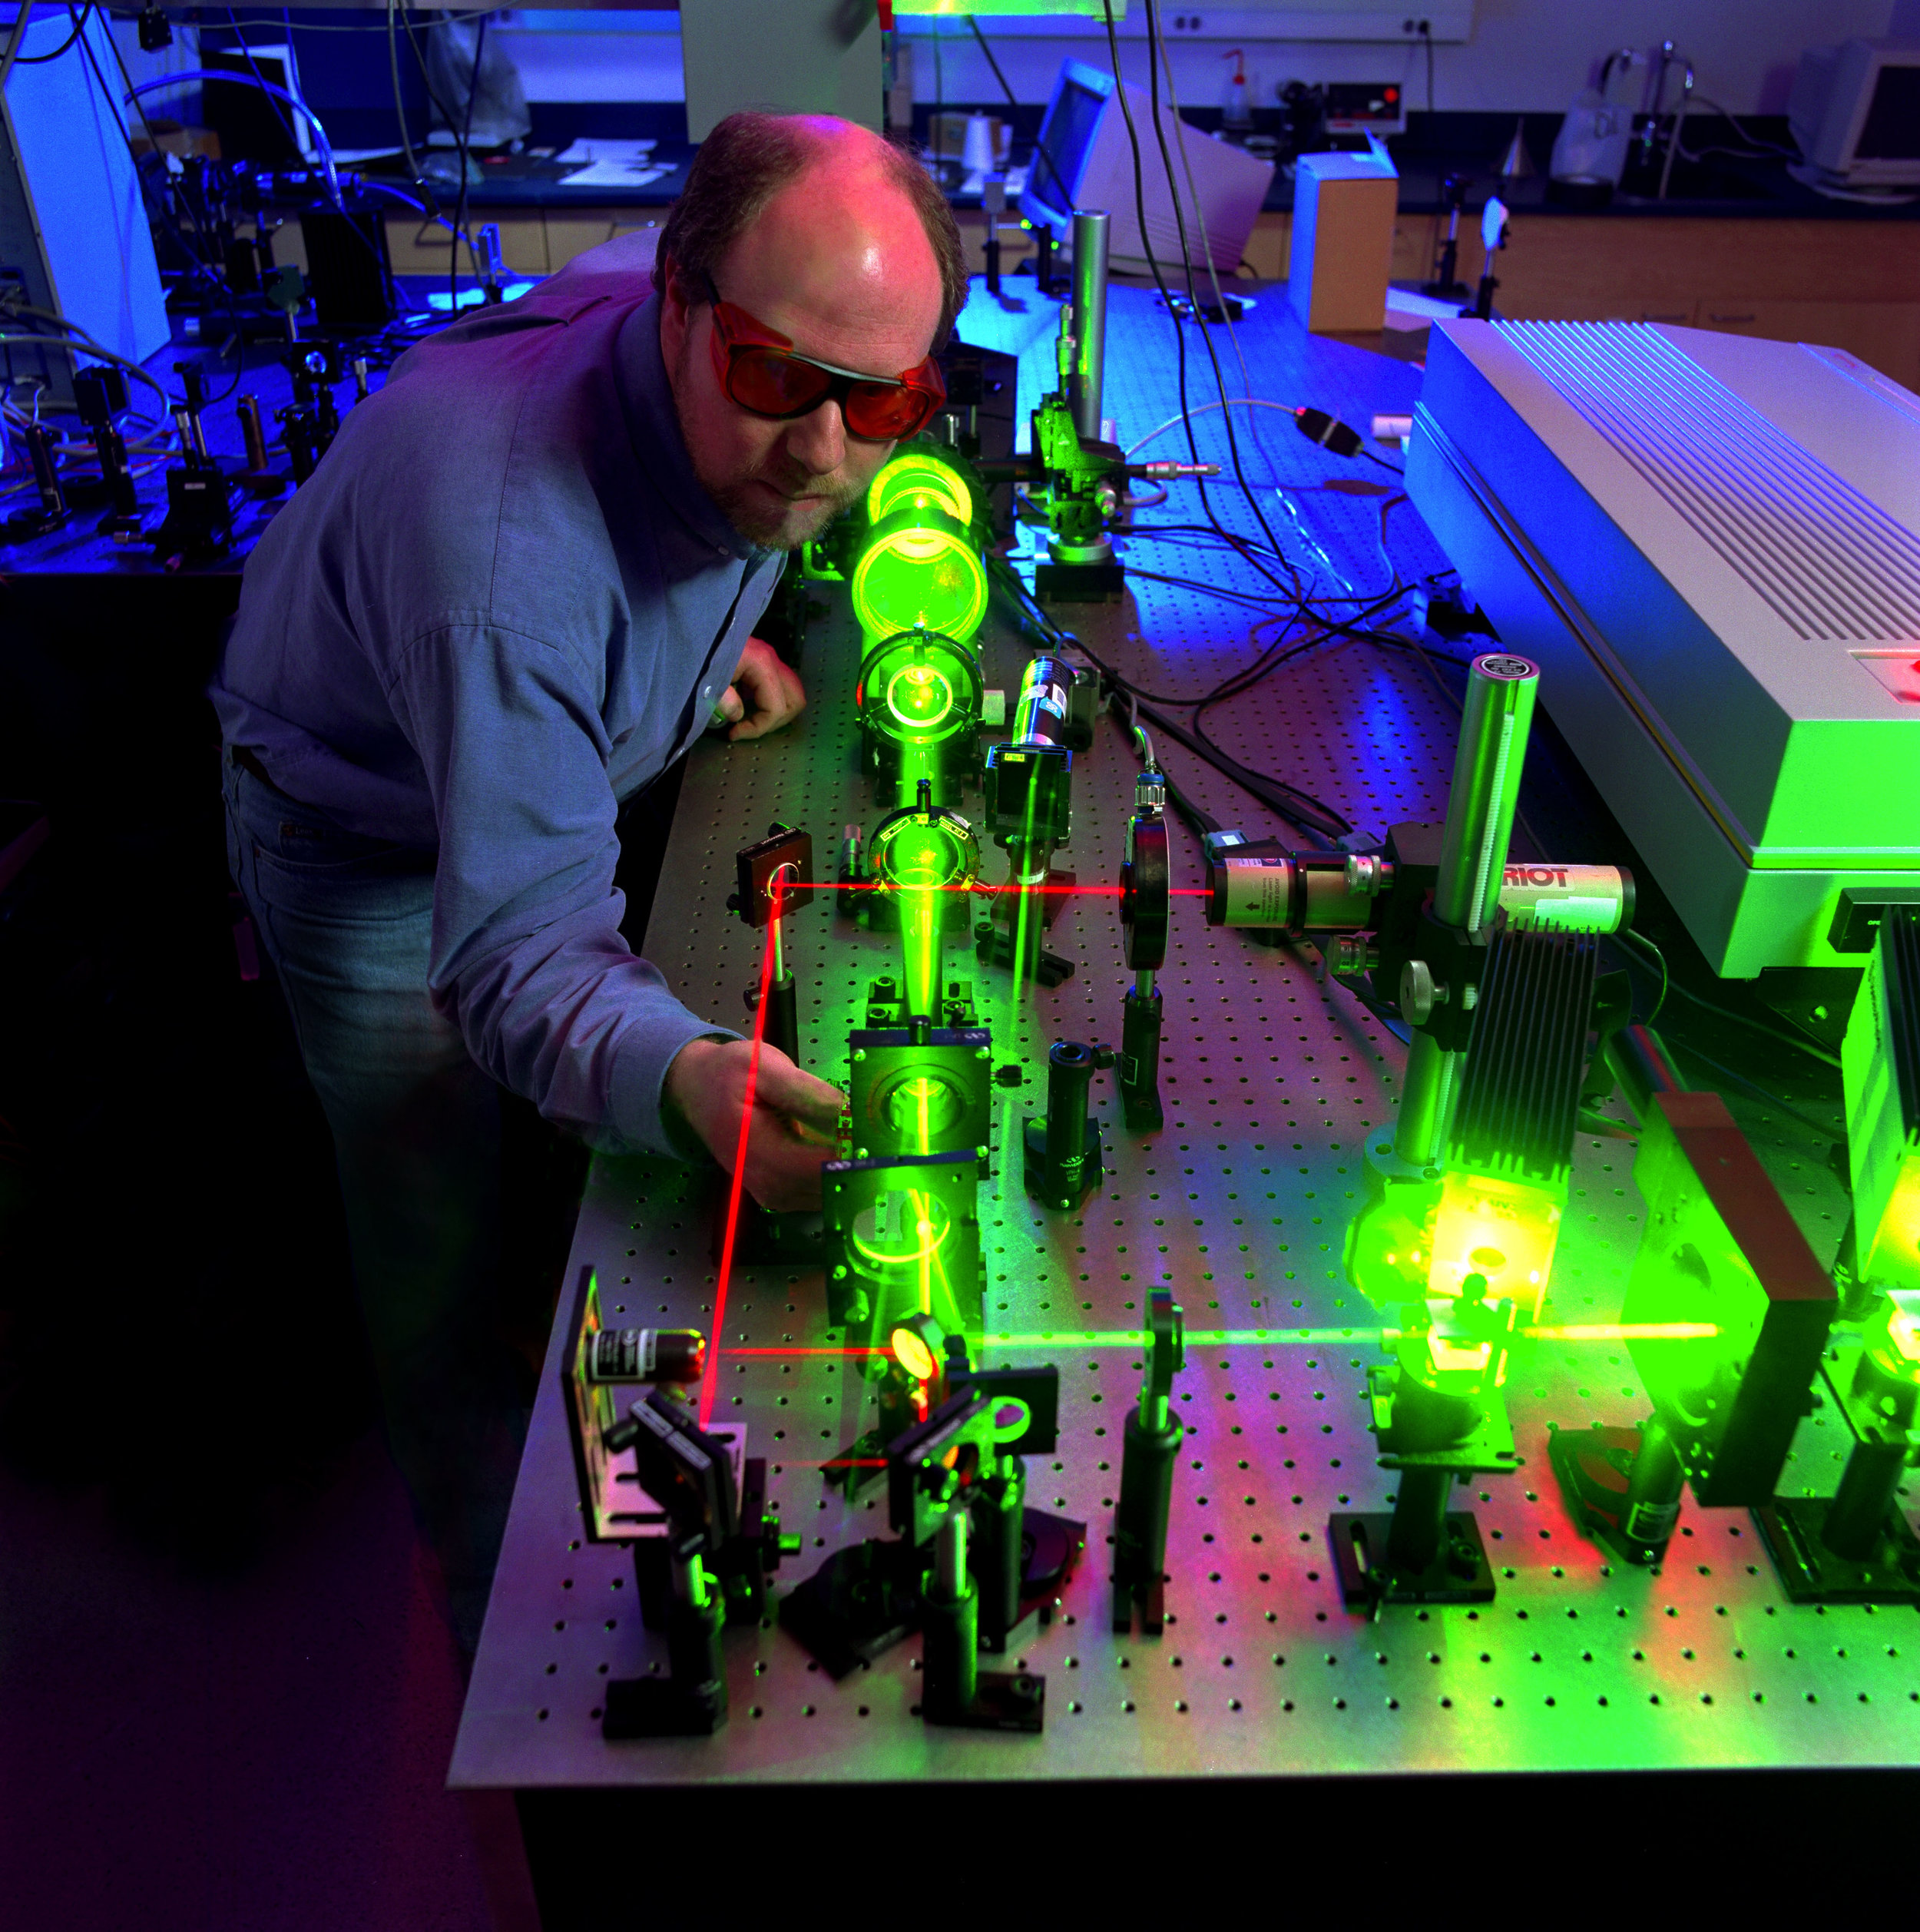 """ Scientist measures the optical limiting performance of a nonlinear material "" by US ARMY /  Adelphi Lab Center  / Douglas G. LaFon IS LICENSED UNDER  CC BY 2.0 ."